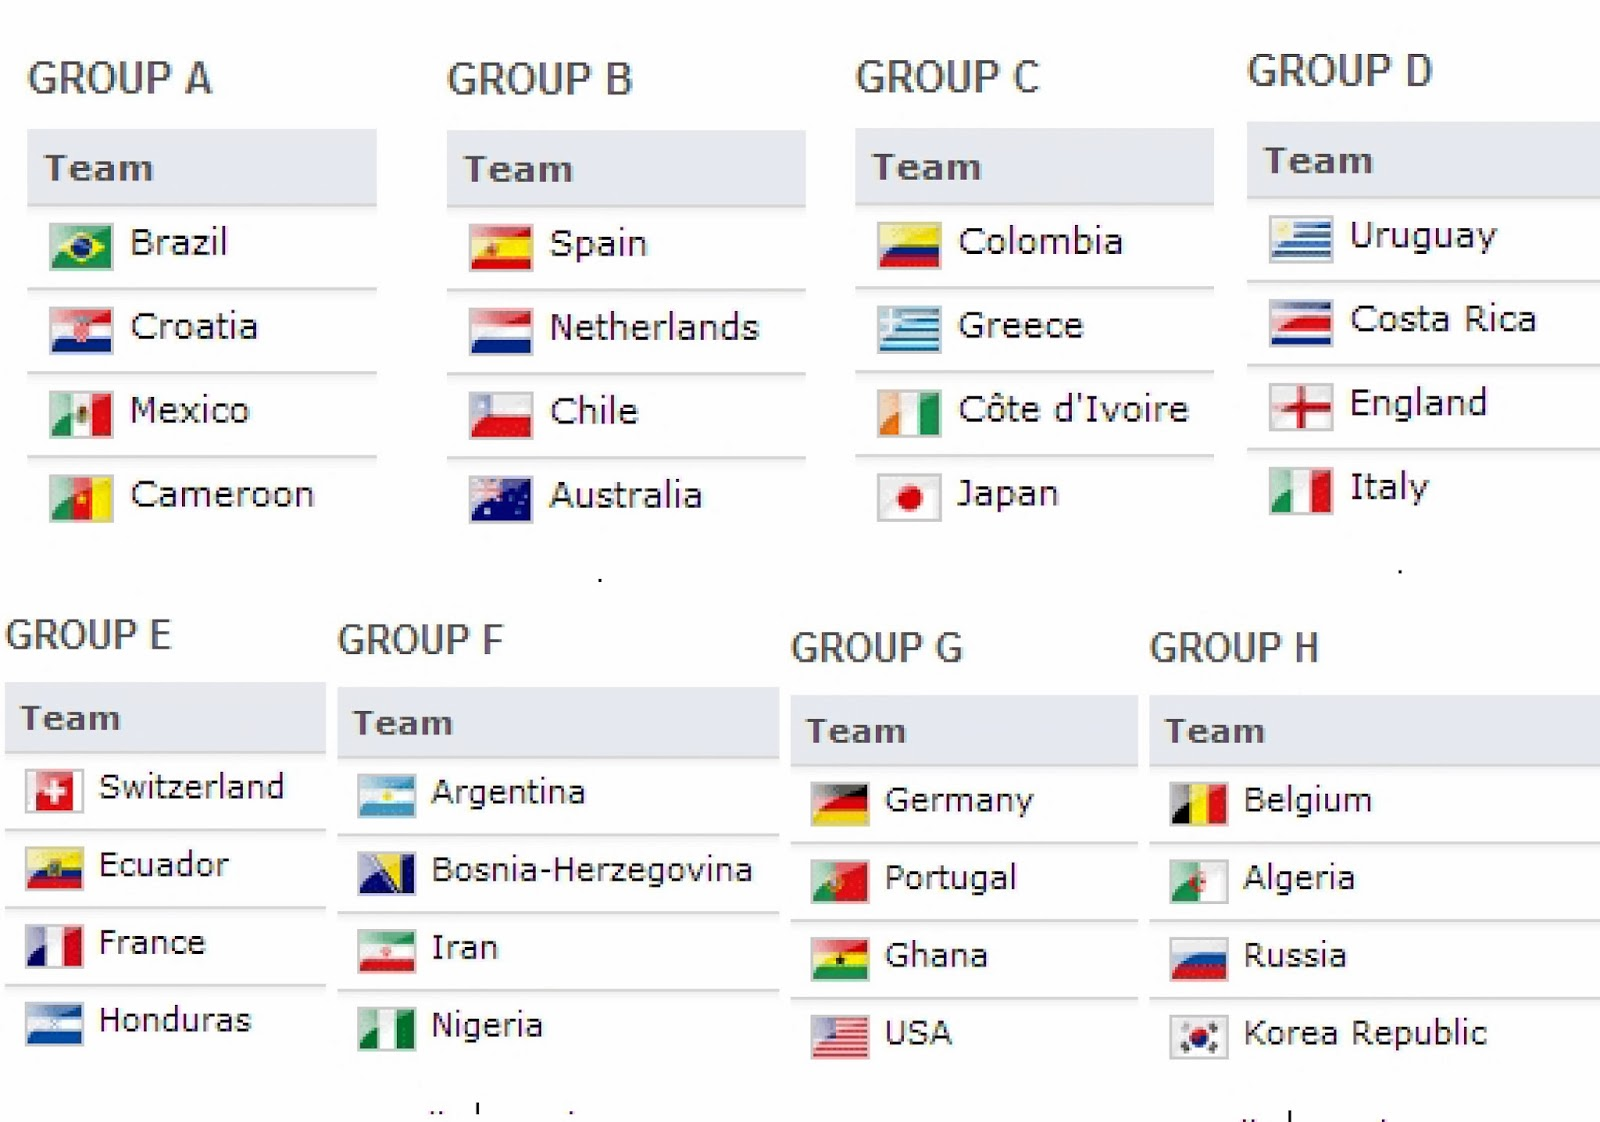 Groups for 2014 Fifa World Cup